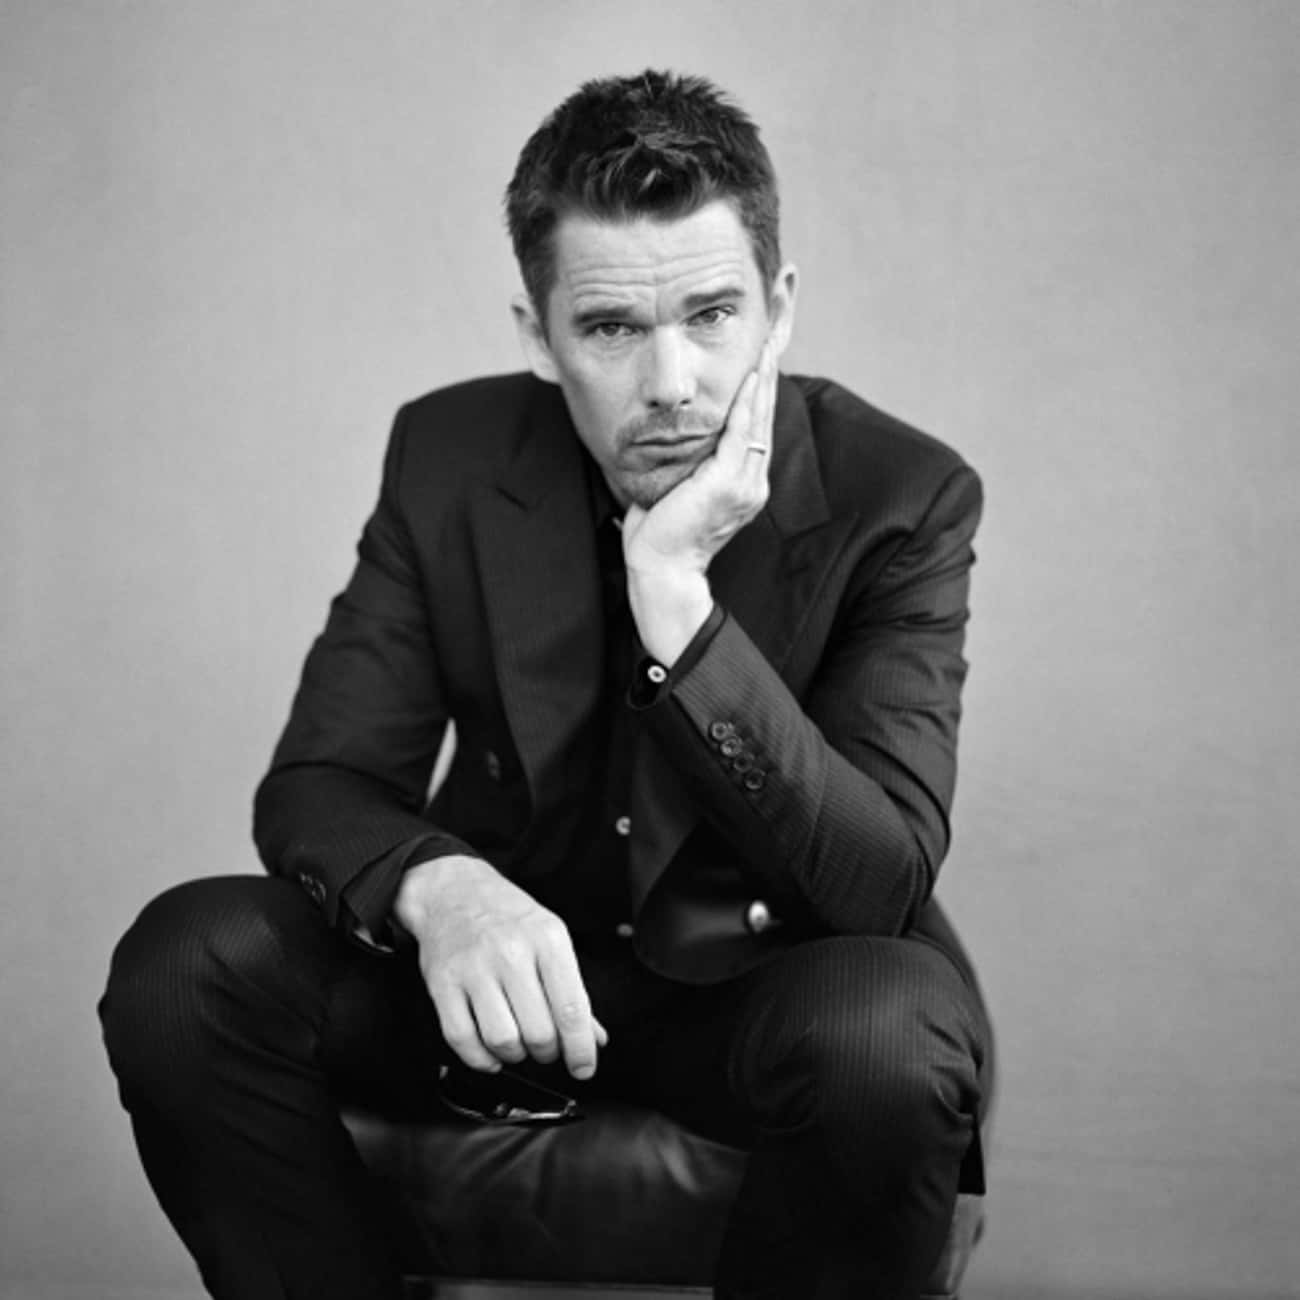 Ethan Hawke in Double Breasted Lightweight Suit